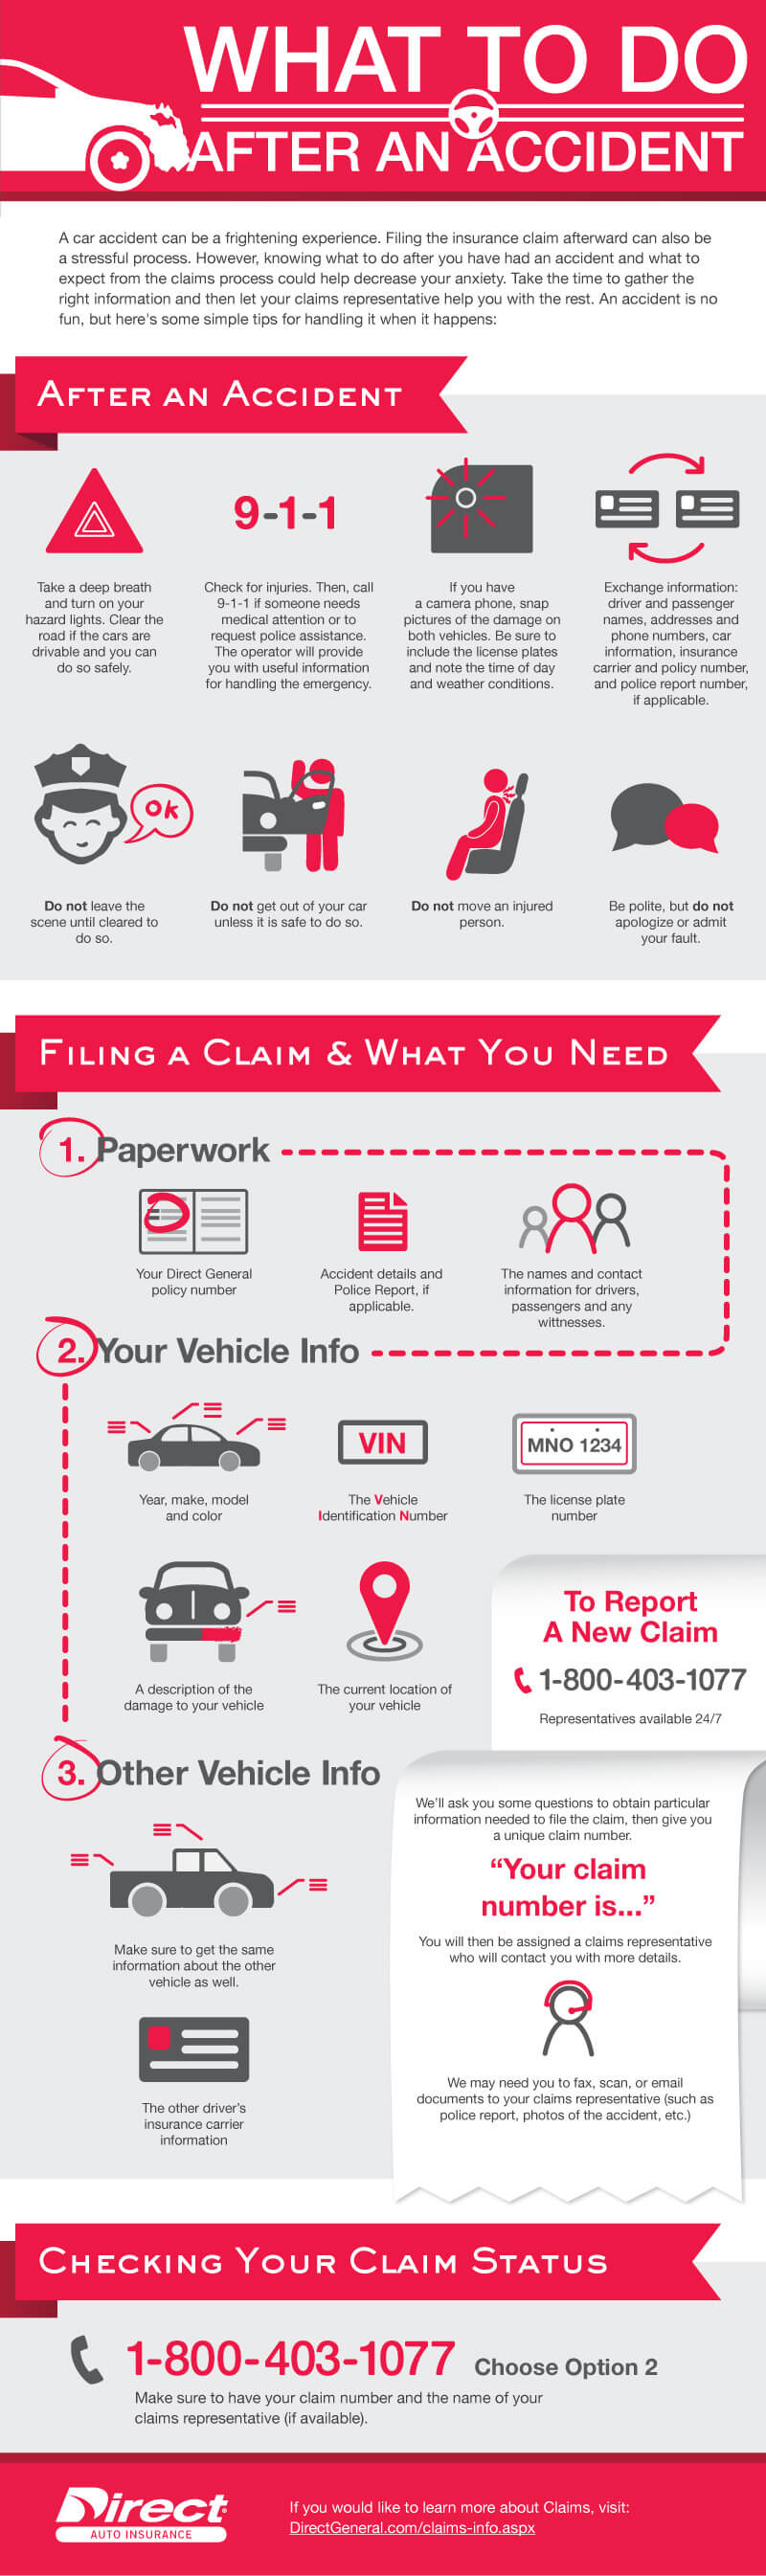 Filing a Claim with Direct Auto Insurance